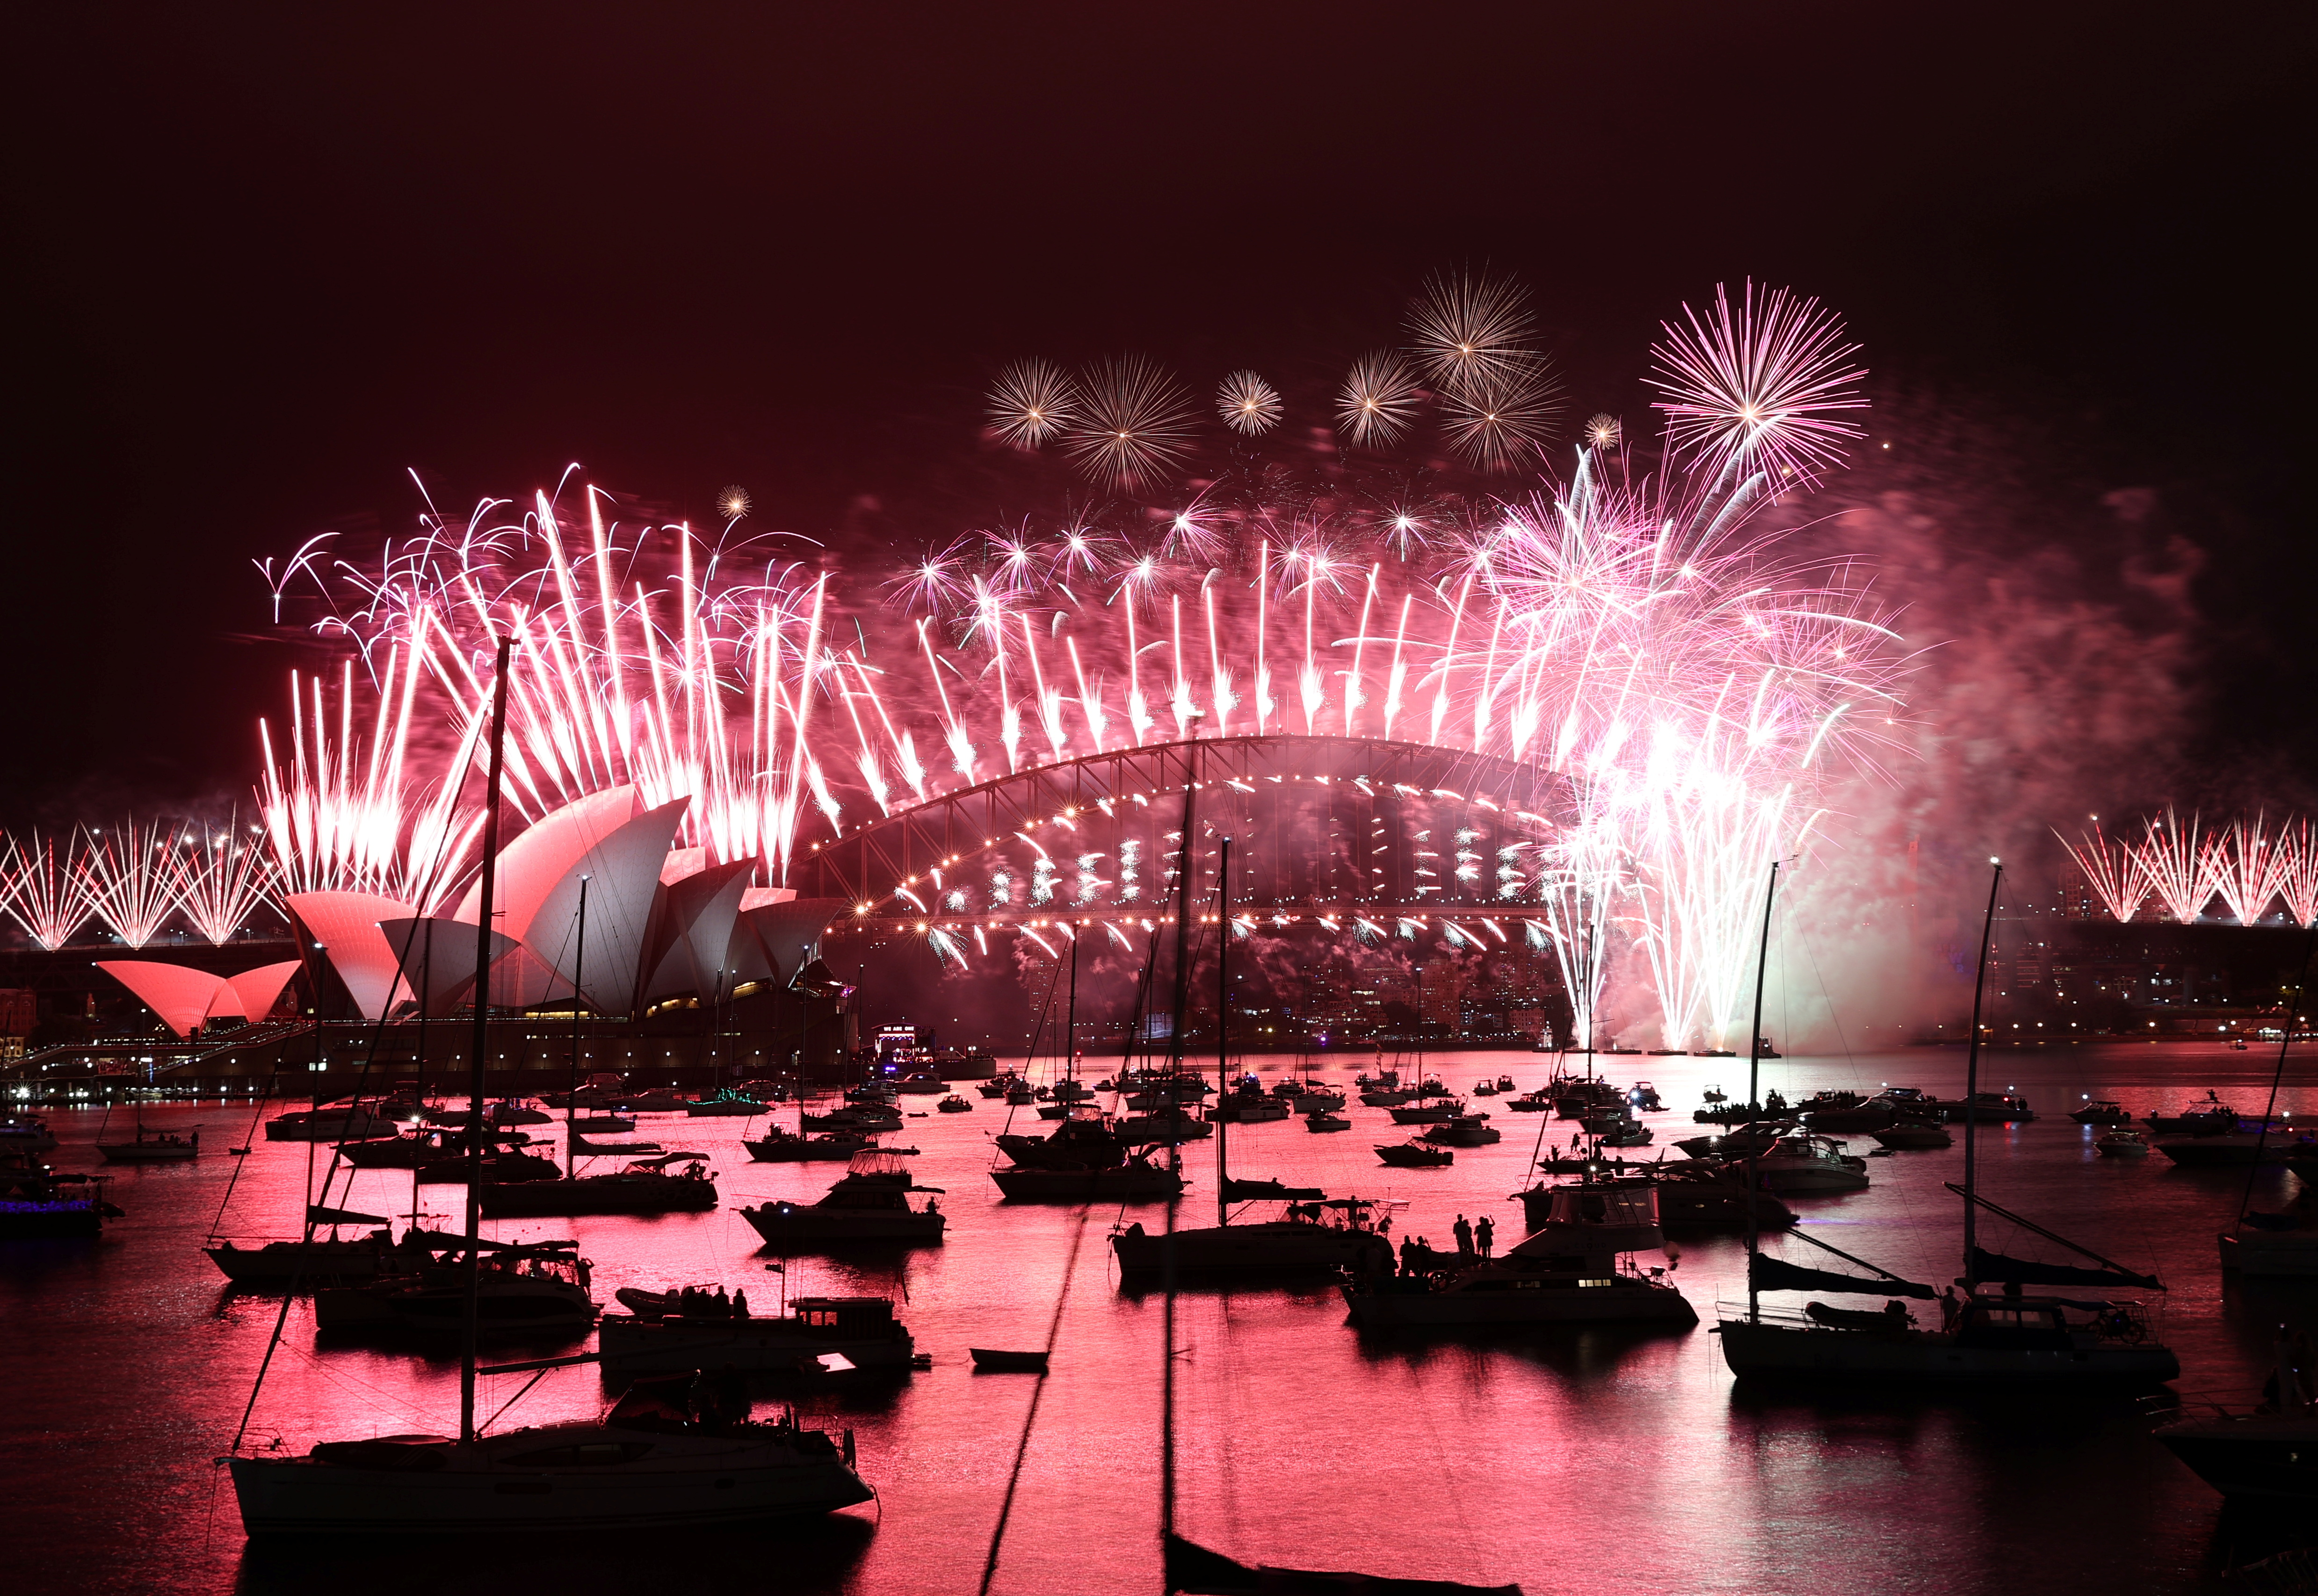 Fireworks explode over the Sydney Opera House and Sydney Harbour Bridge during downsized New Year's Eve celebrations due to an outbreak of the coronavirus disease (COVID-19) in Sydney, Australia, January 1, 2021. REUTERS/Loren Elliott